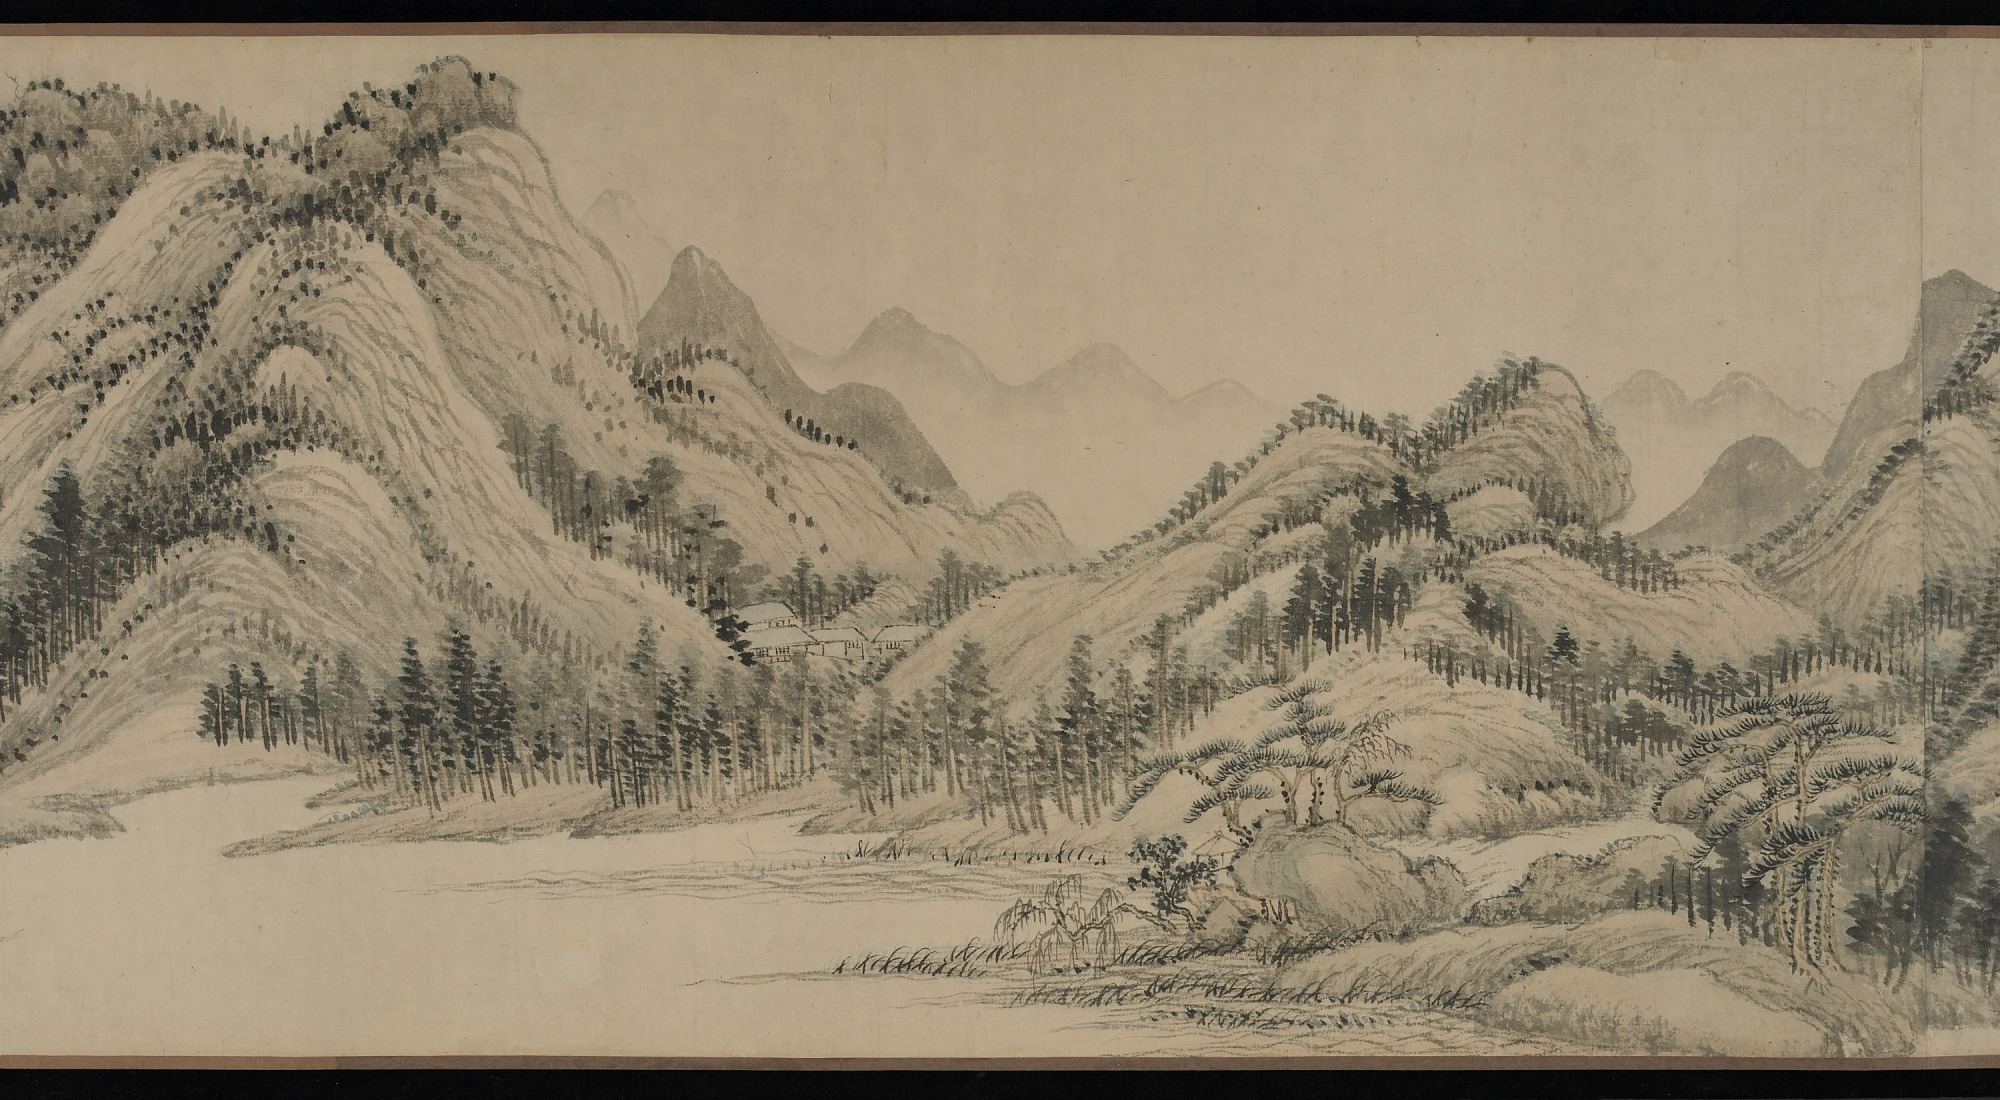 section 6: Dwelling in the Fuchun Mountains after Huang Gongwang